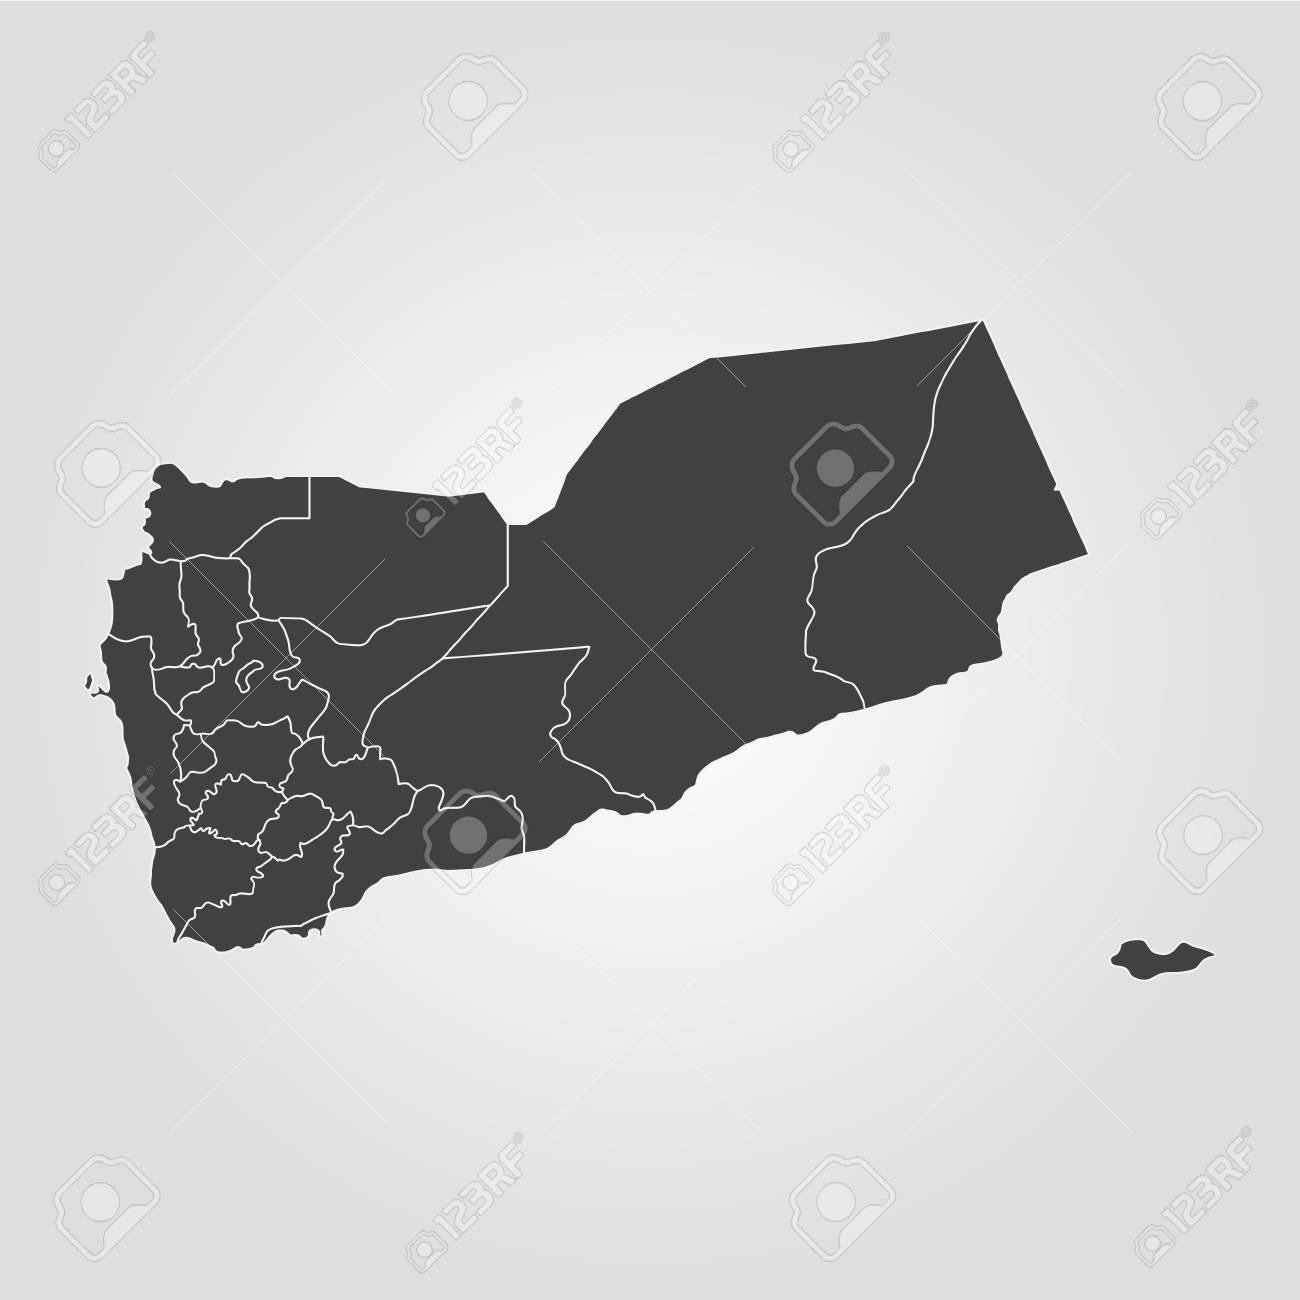 Map Of Yemen Vector Illustration World Map Royalty Free Cliparts